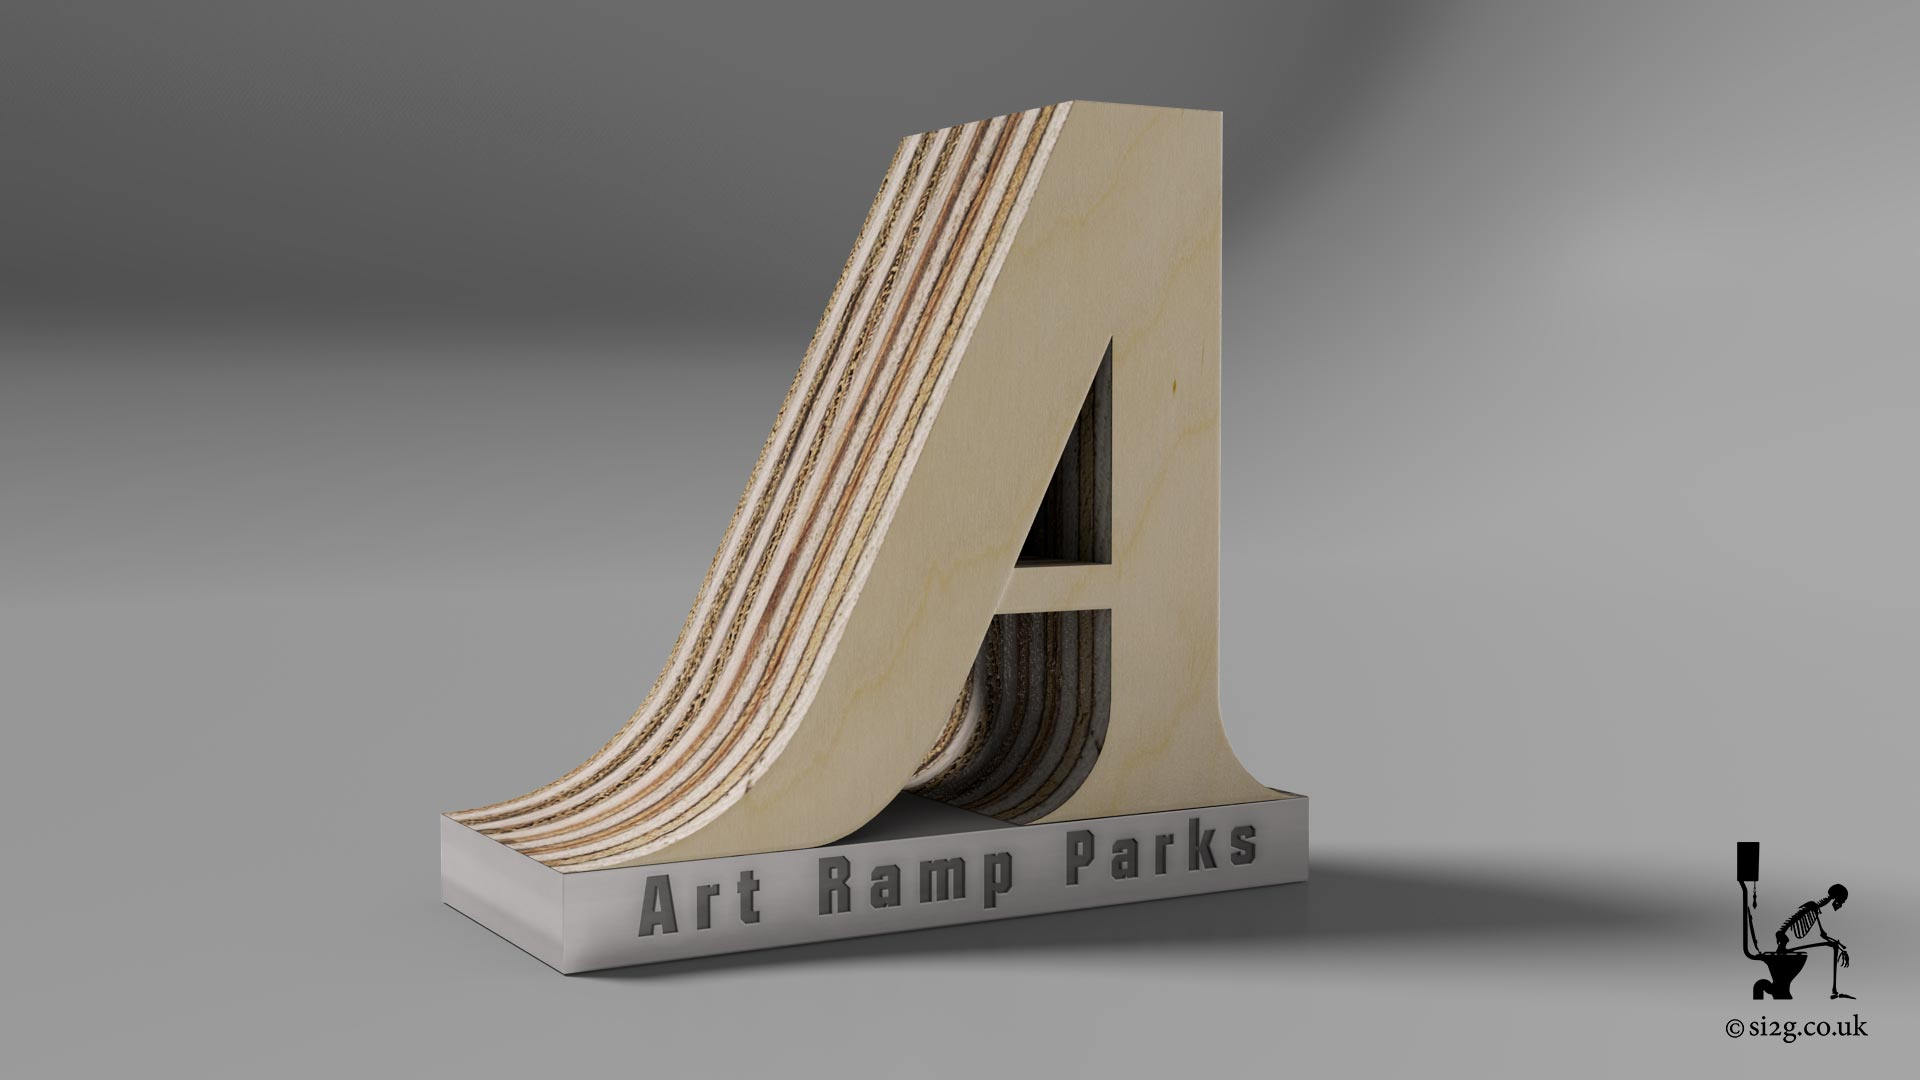 Skatepark Builders Logo - This client wanted their simple 2D logo to look more like some of their skatepark designs.  The brief was to redesign the logo in 3D and make it look like it was made from 18mm marine ply.  The final design was provided cut out and separate from the background, allowing them more flexibility in its application.